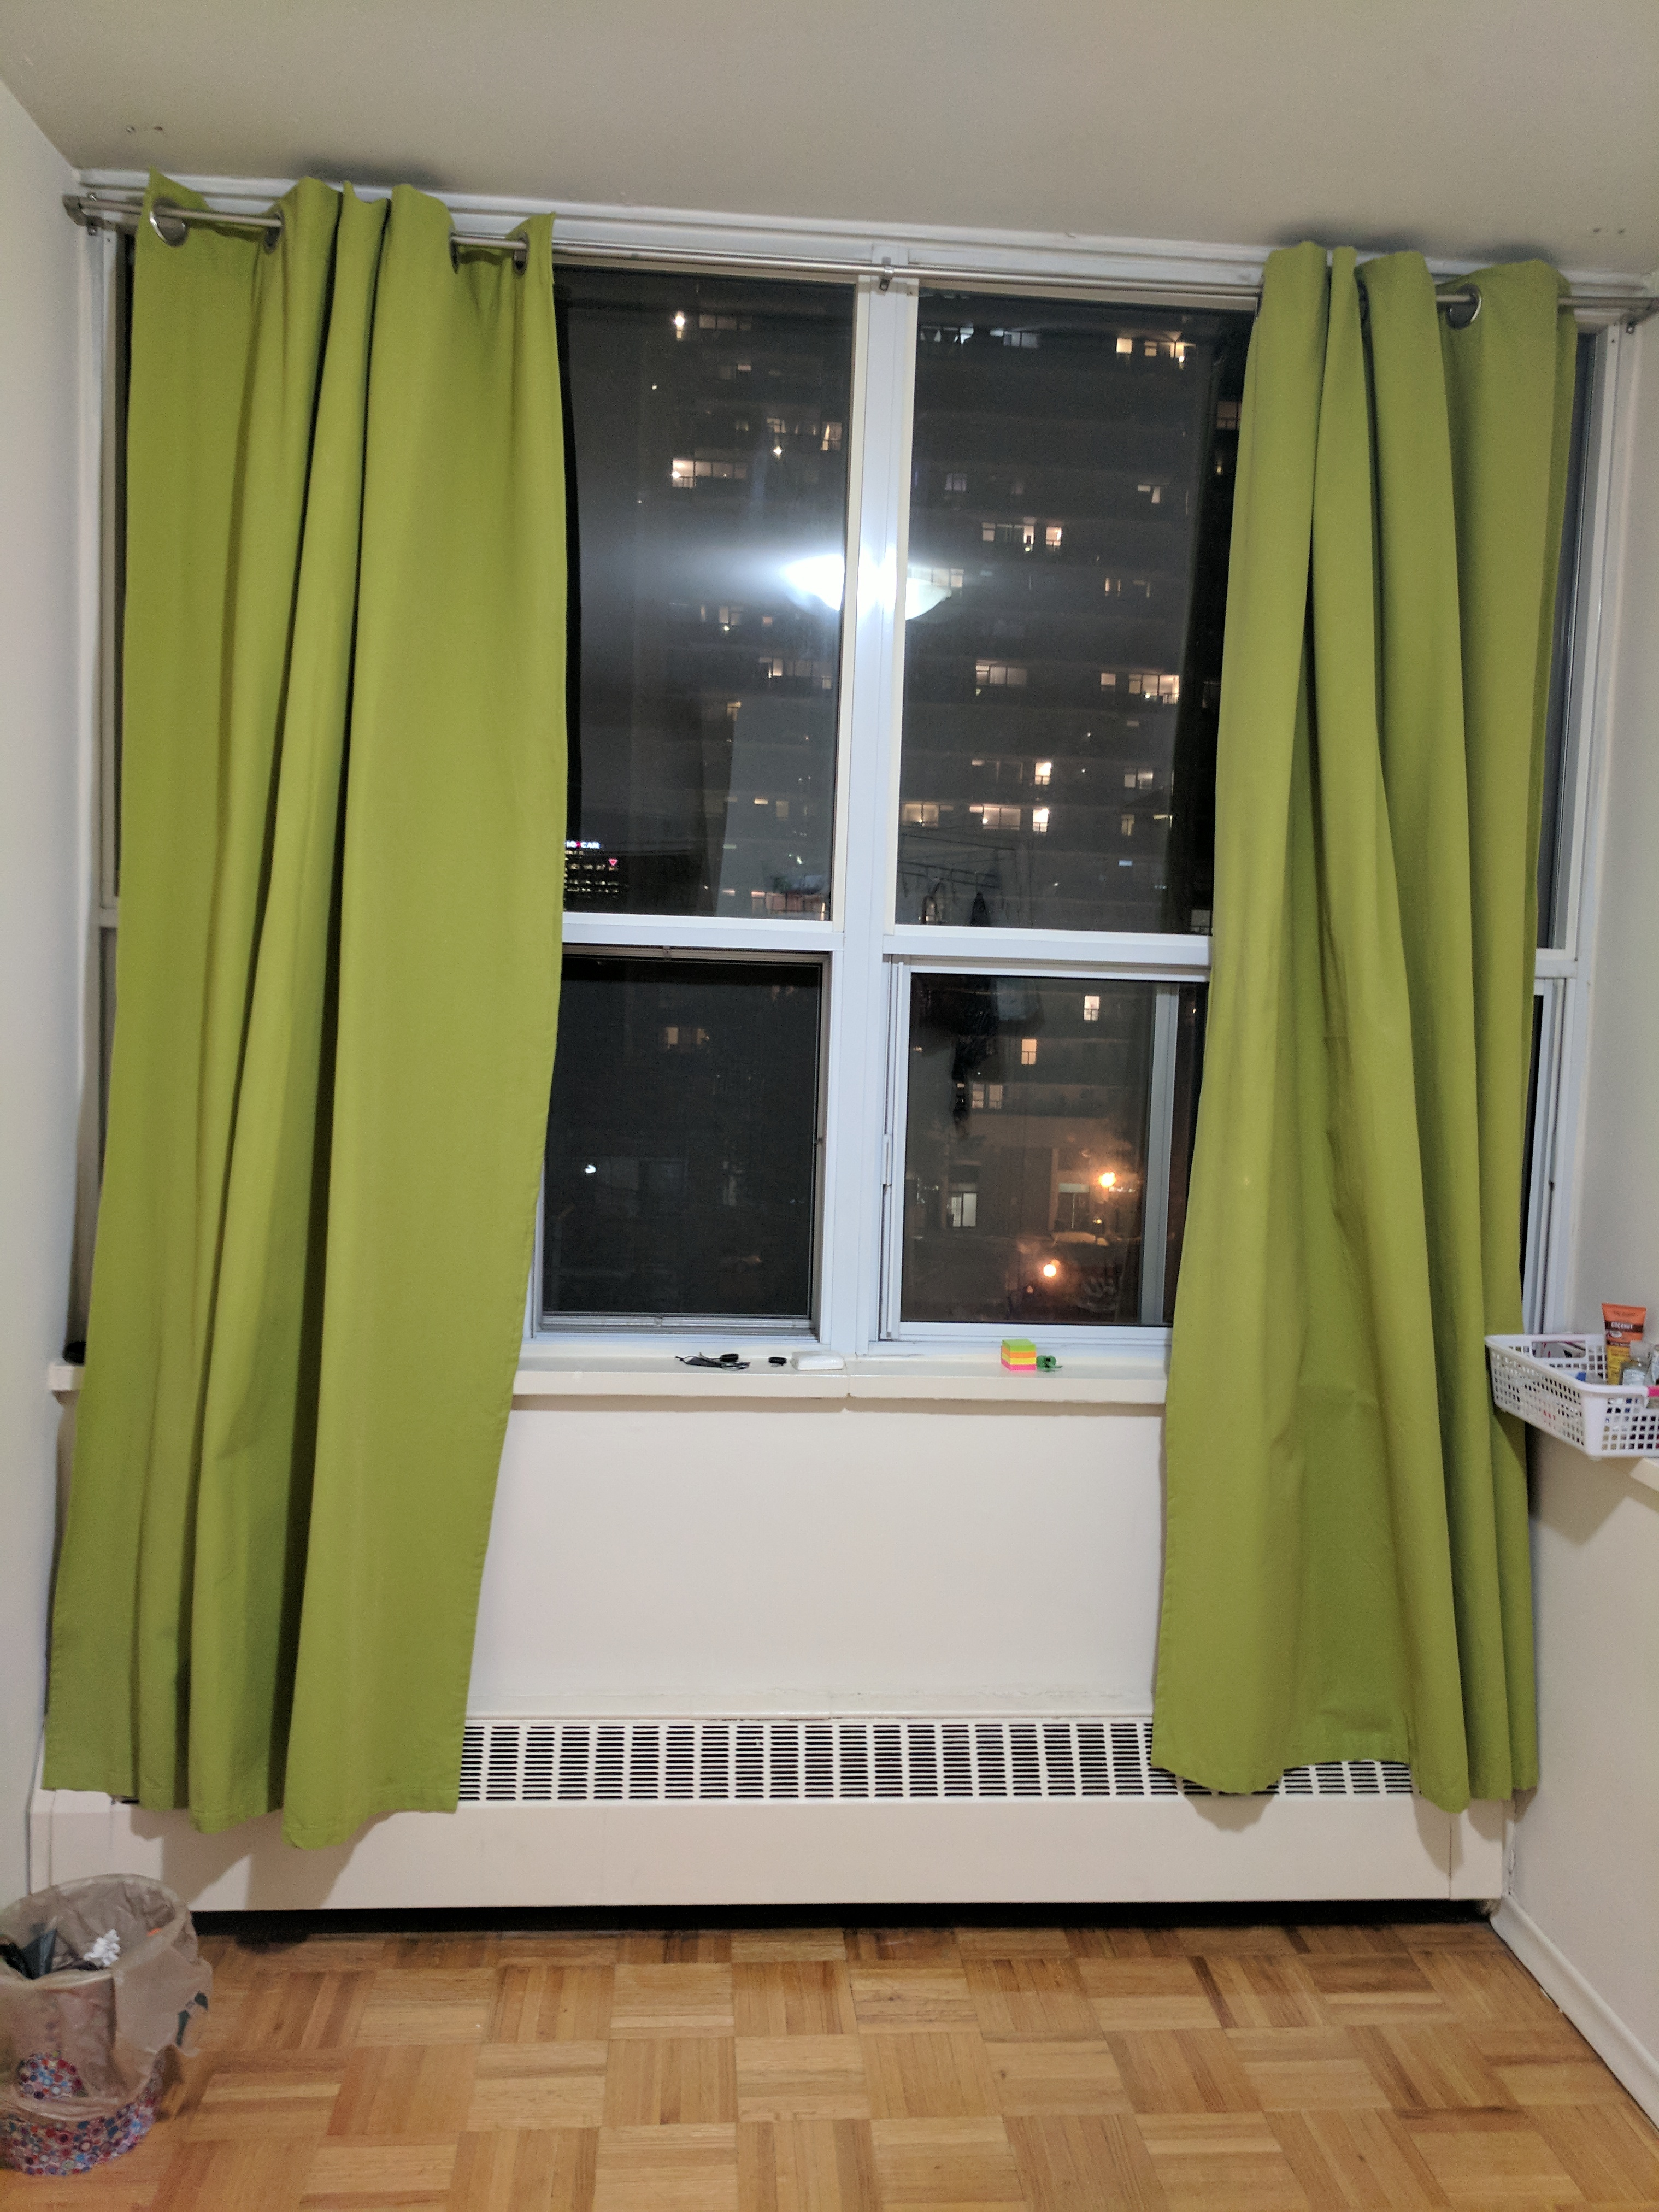 Furnished room for rent(Female)- July 1st- Downtown Toronto